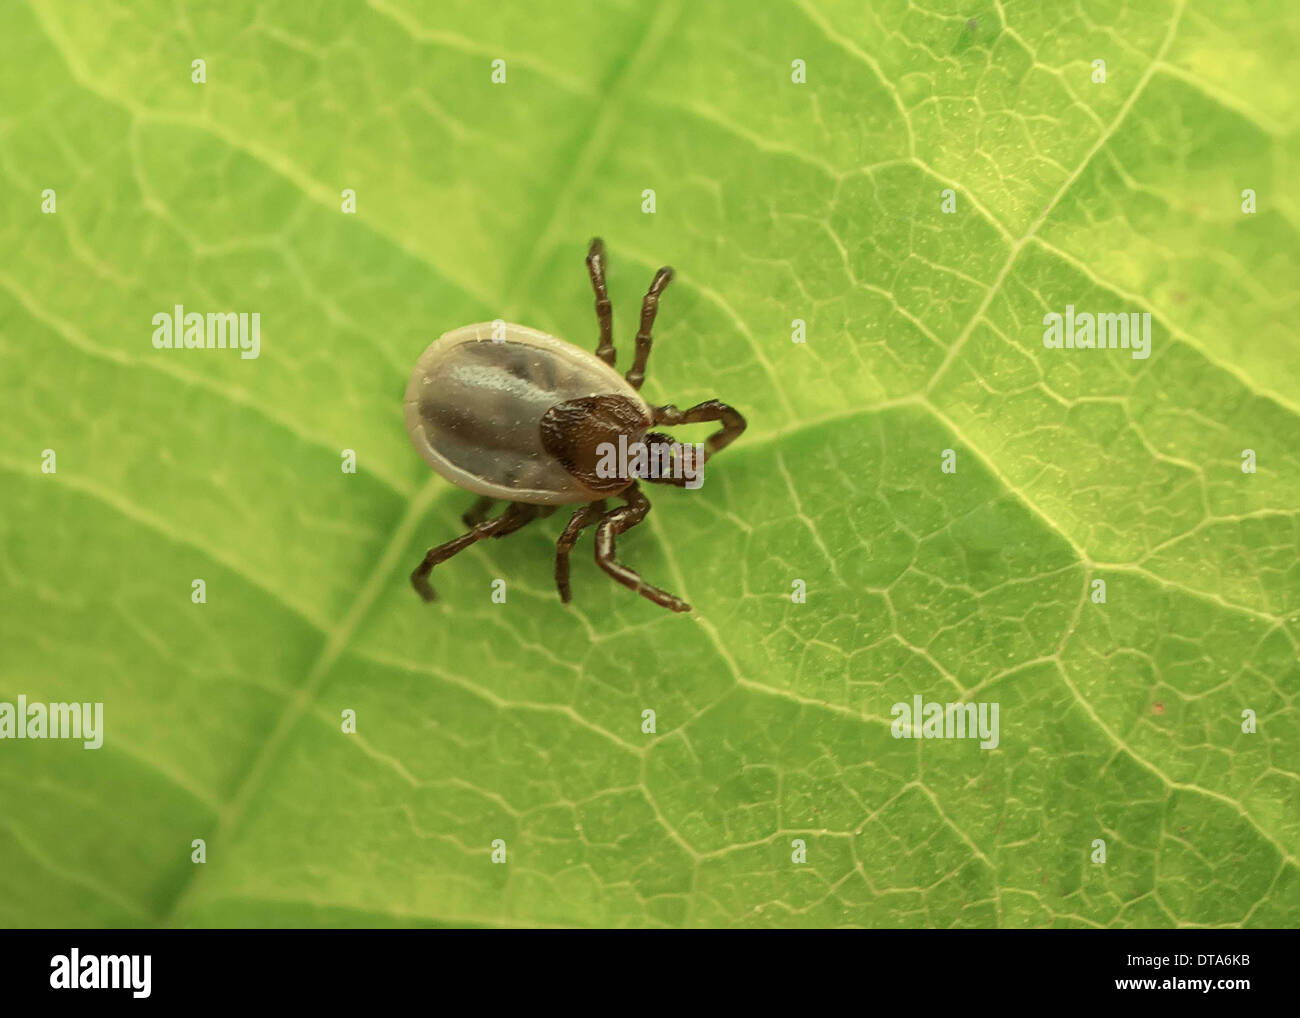 dorsal view of tick resting on leaf - Stock Image